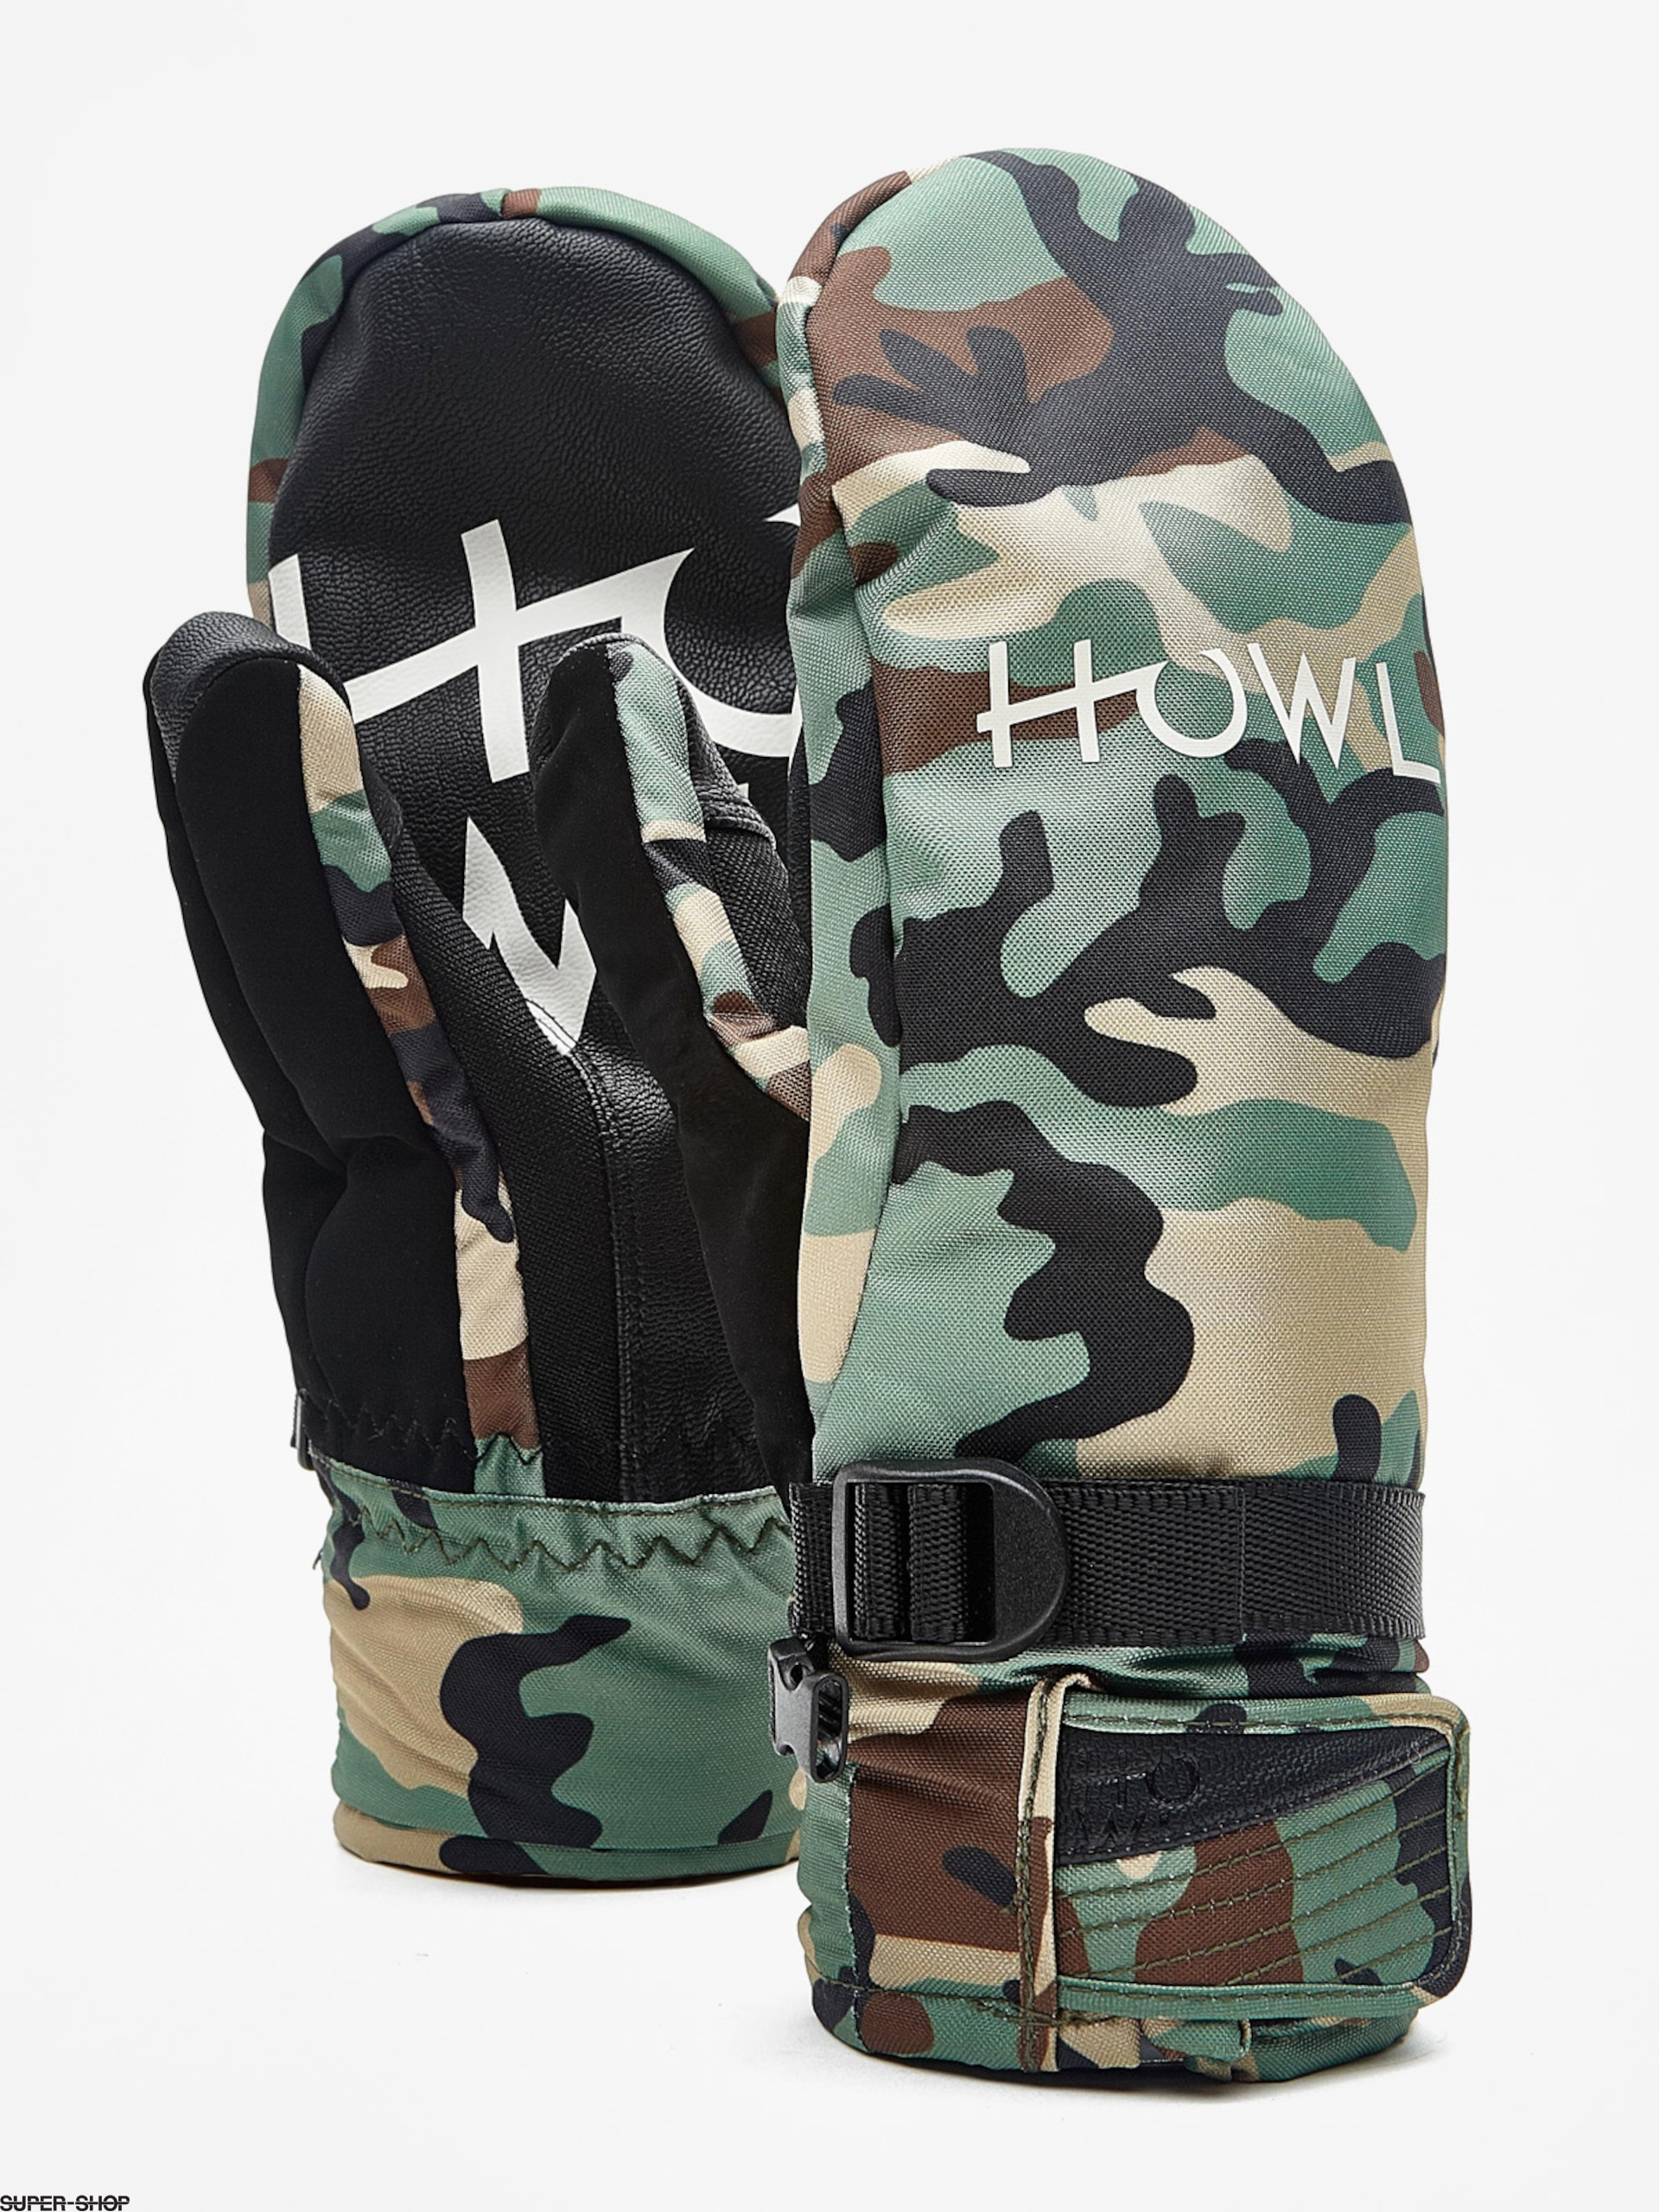 Howl Gloves Fairbanks Mitt (camo)